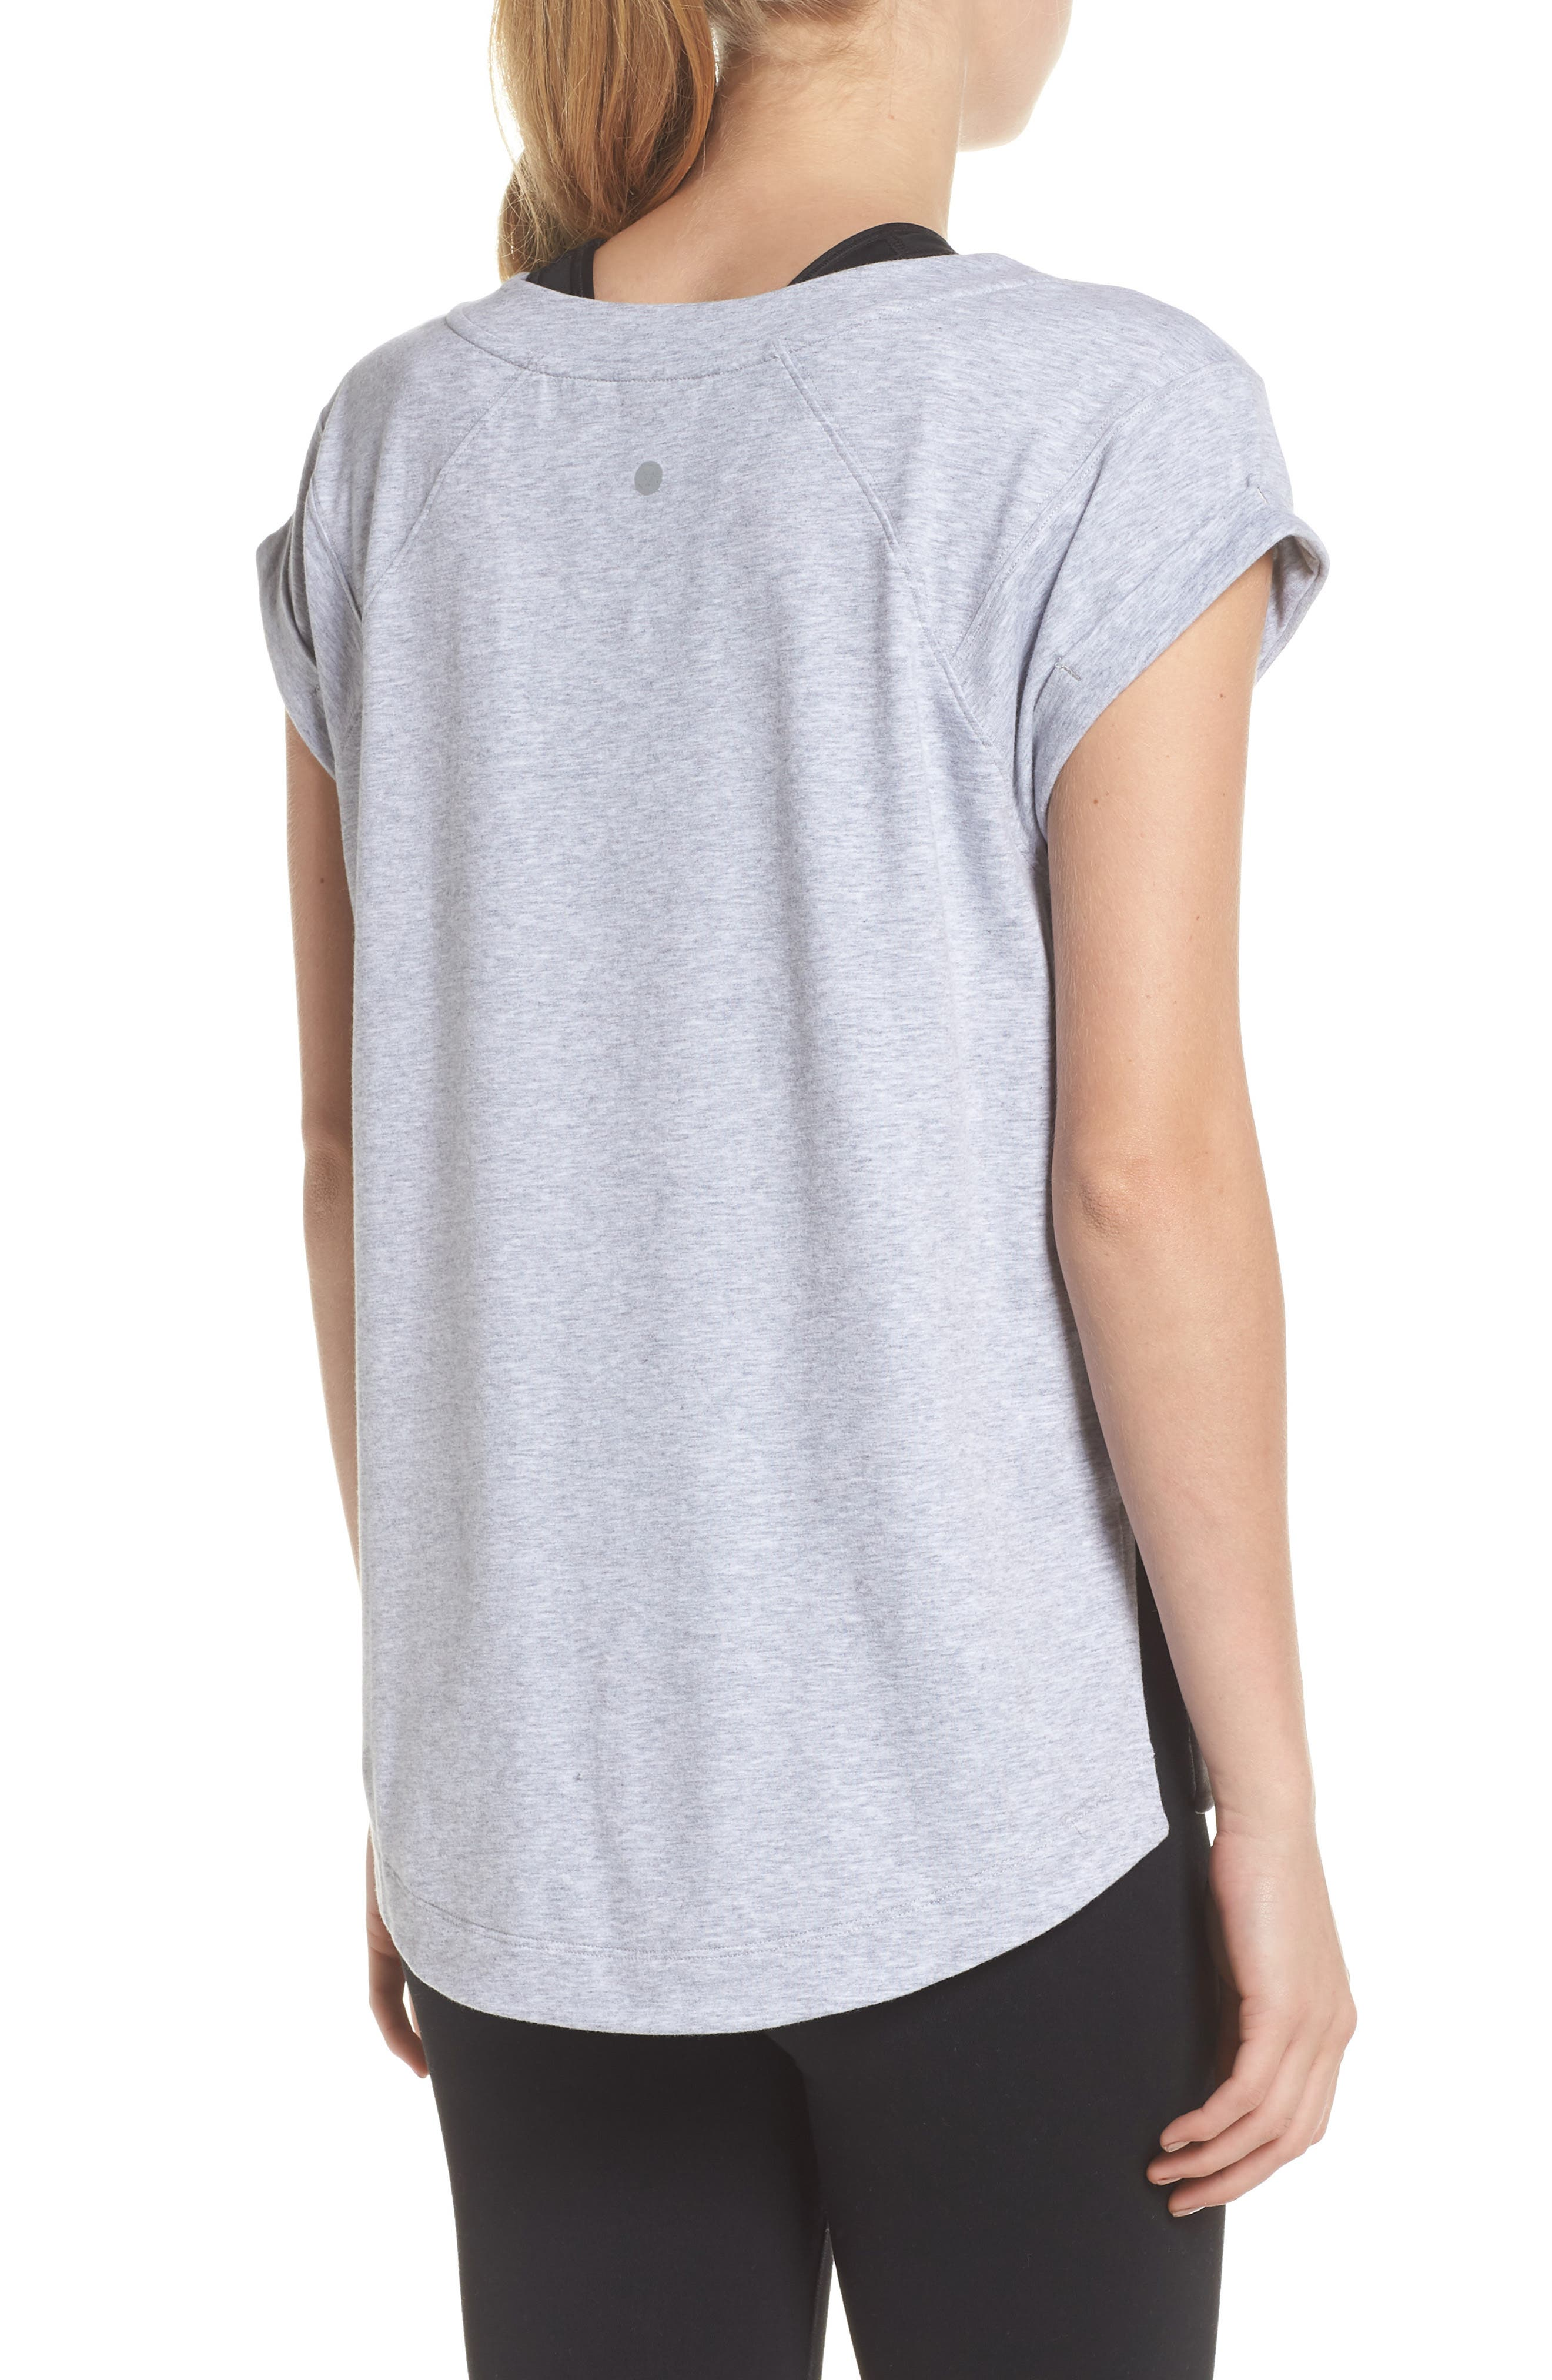 Karly Tee,                             Alternate thumbnail 2, color,                             GREY QUIET HEATHER